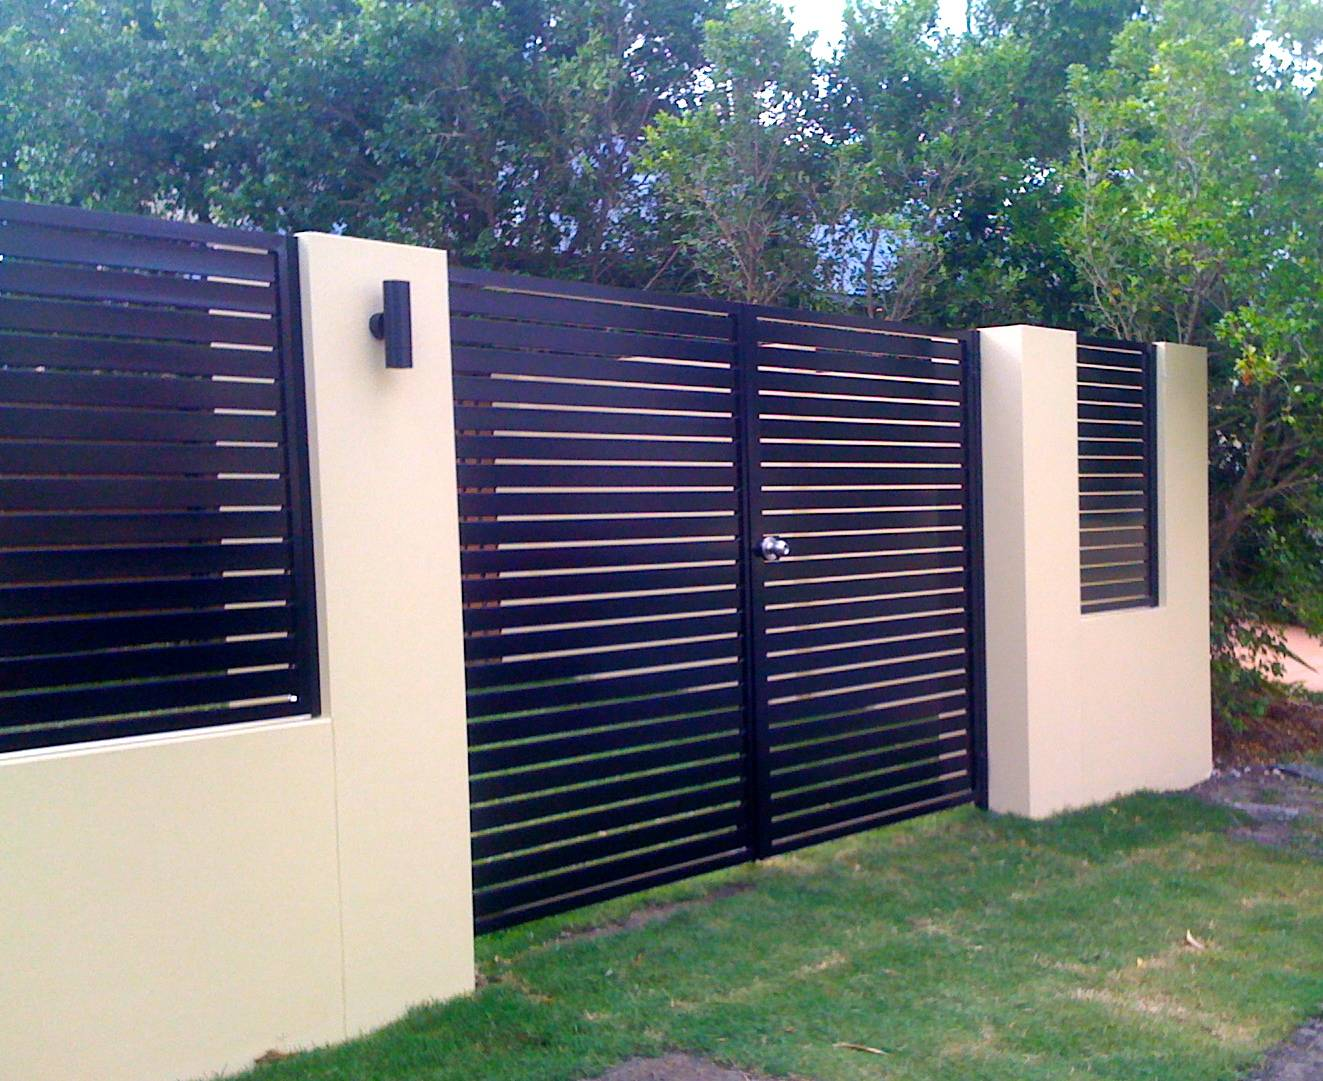 Double gates in a front fence.